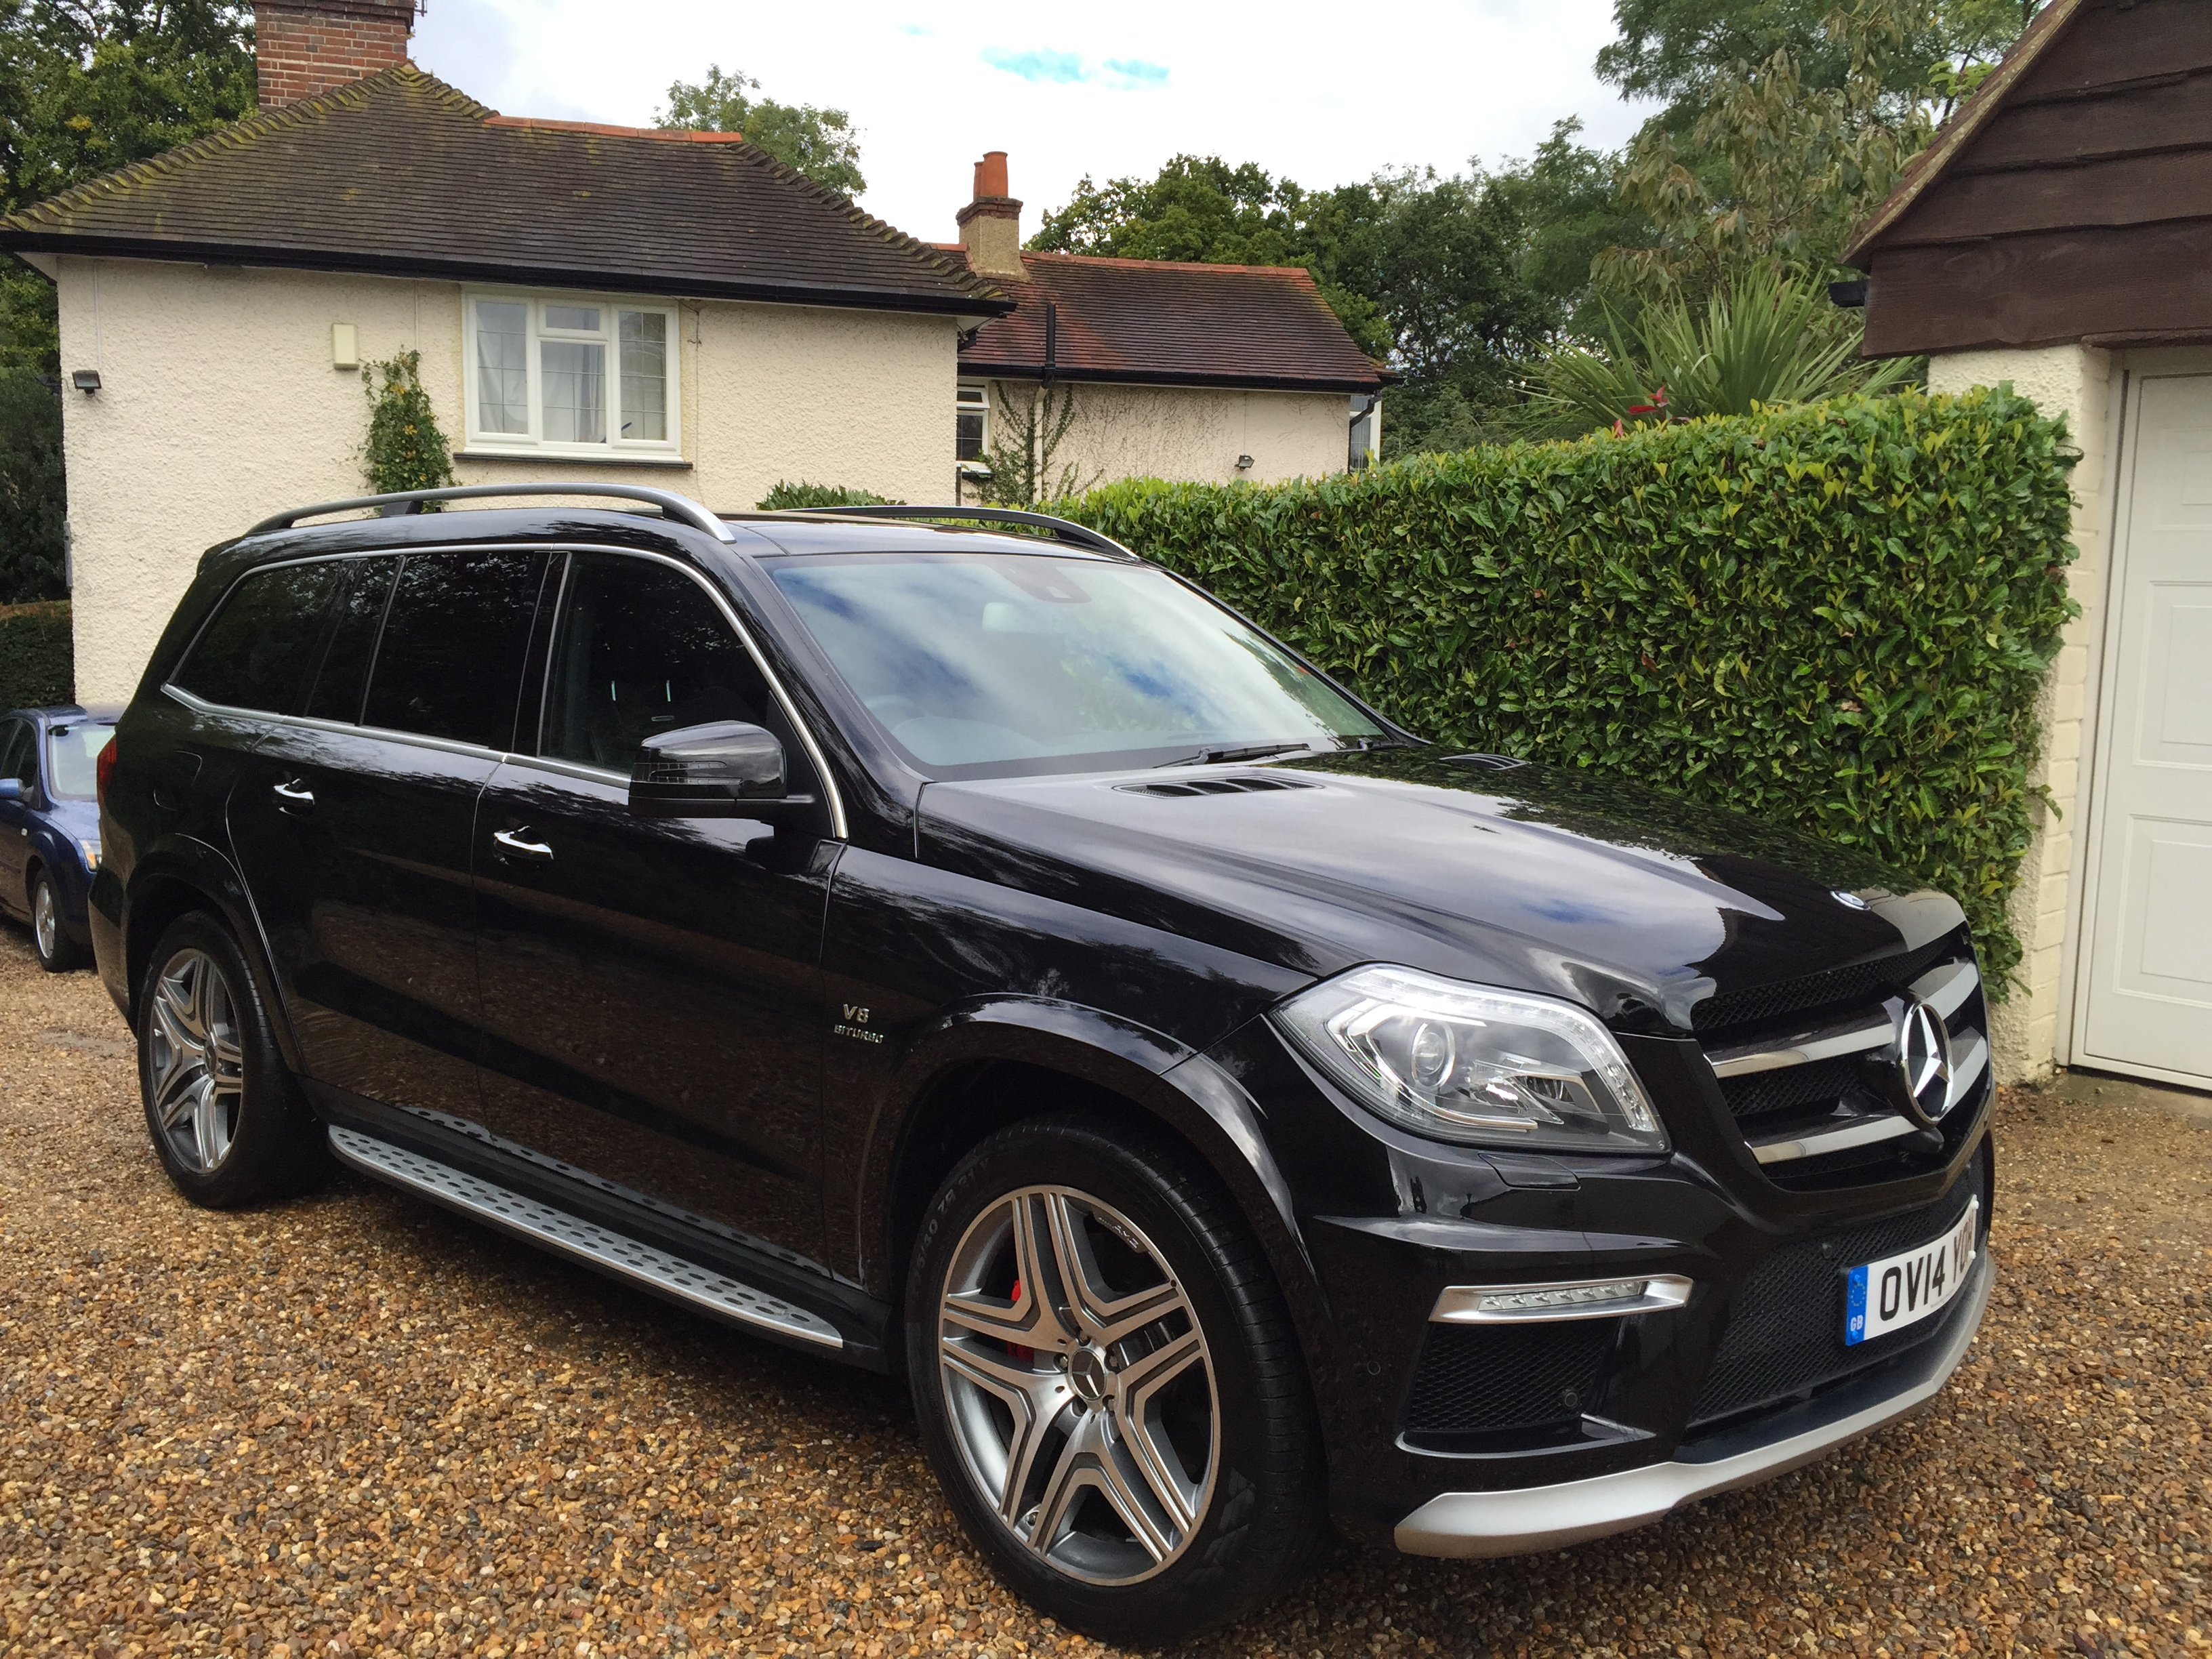 Mercedes GL63 AMG 7 SEATER | GS Vehicle Servcies